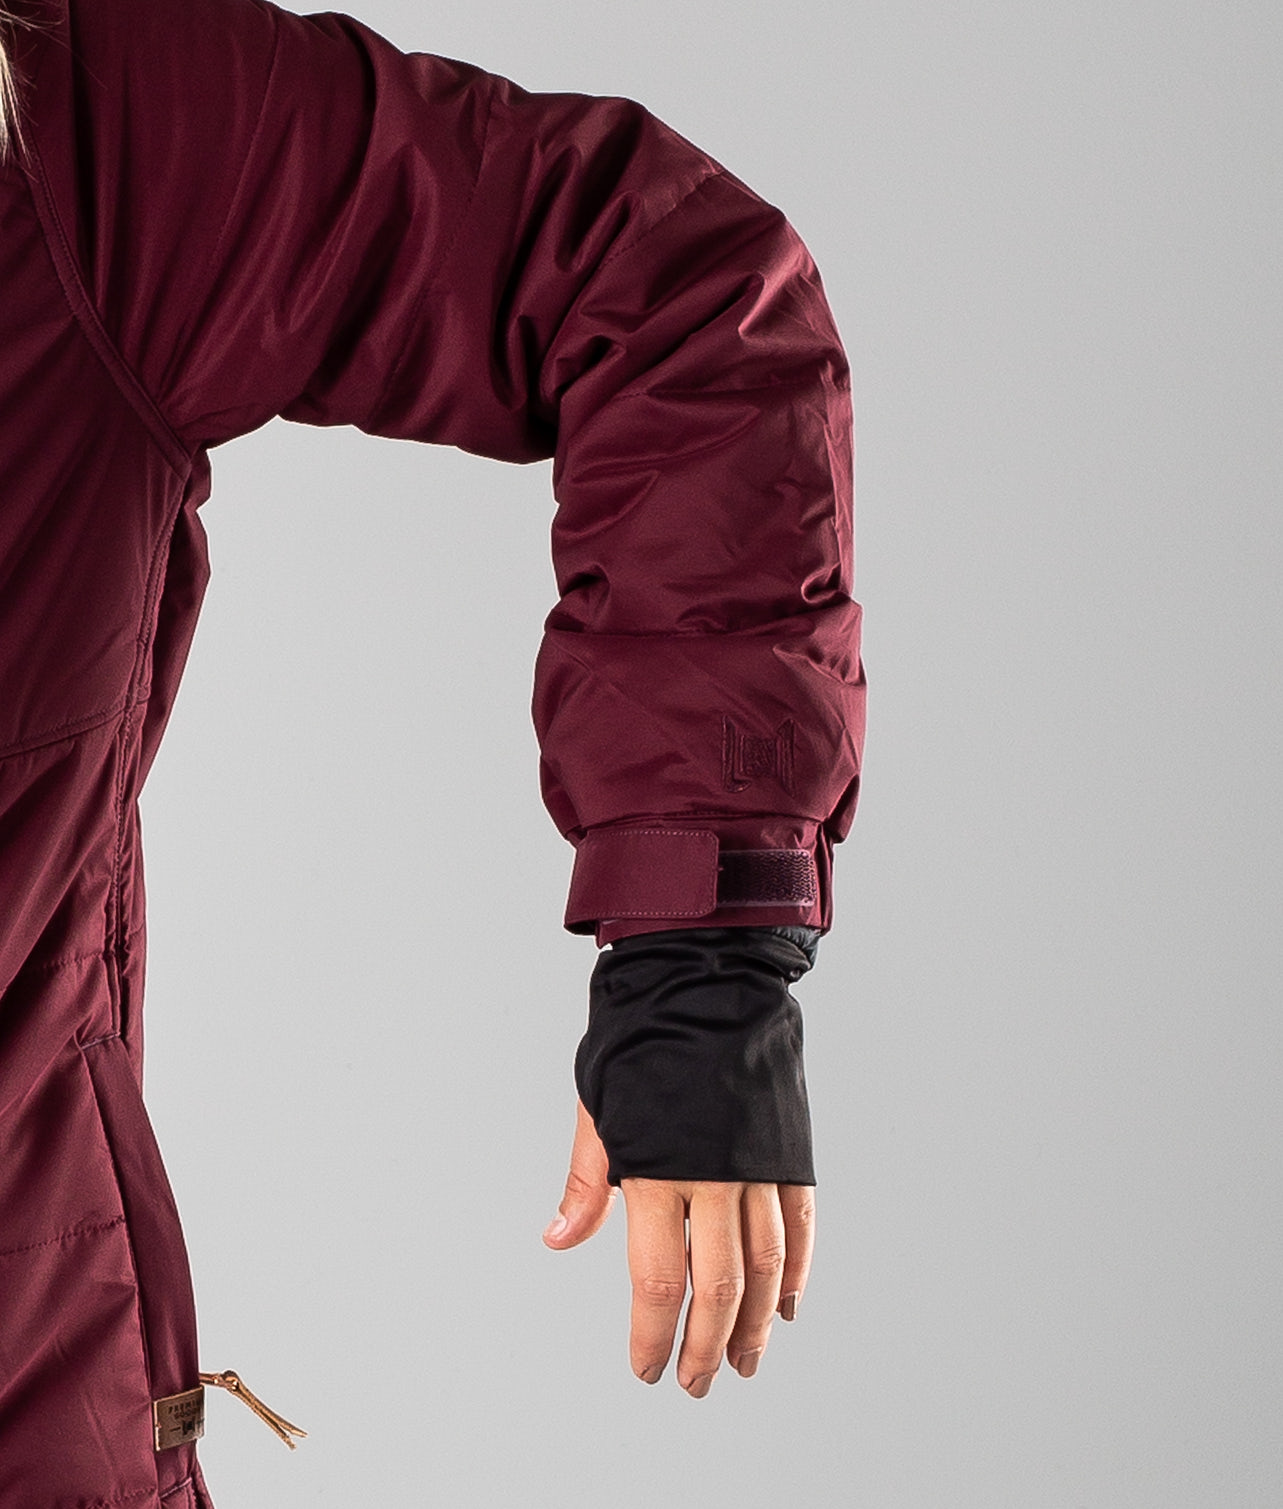 Buy Tamaryn Snowboard Jacket from L1 at Ridestore.com - Always free shipping, free returns and 30 days money back guarantee